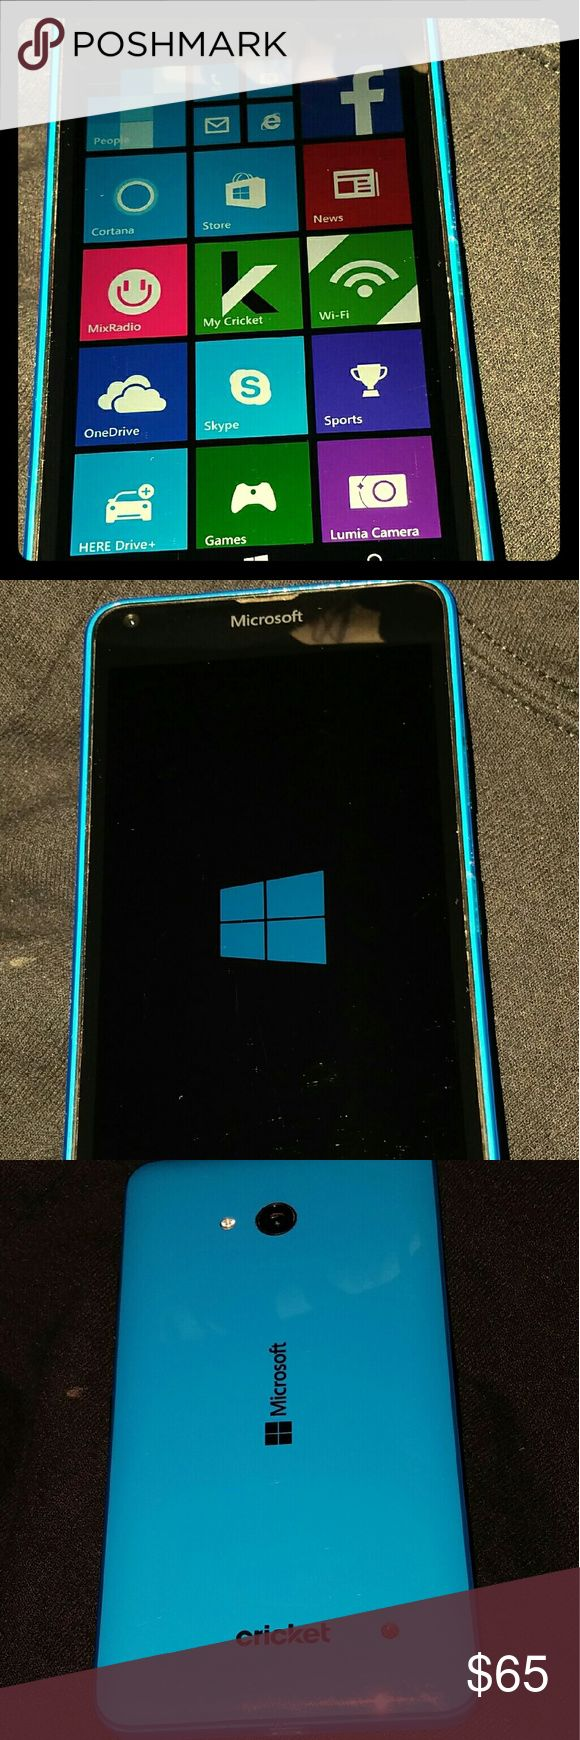 "BRAND NEW- NO BOX- Microsoft Lumia- 640 Cell Phone Brand new (NOT in Original Box) Microsoft Lumia- 640  4G LTE >>Operating on Windows 8.1 Software<< This phone is unlocked to ""Cricket"" phone carrier.. It has NO passwords, NO locks, NO locked screens, and it has NOT been used or hooked up on a line yet.. It's Brand new.. And ready to be hooked up on your Cricket line! Color is Baby Blue. Uses Micro SIM card.. SEND ME YOUR OFFER!! :):) Microsoft Windows Other"